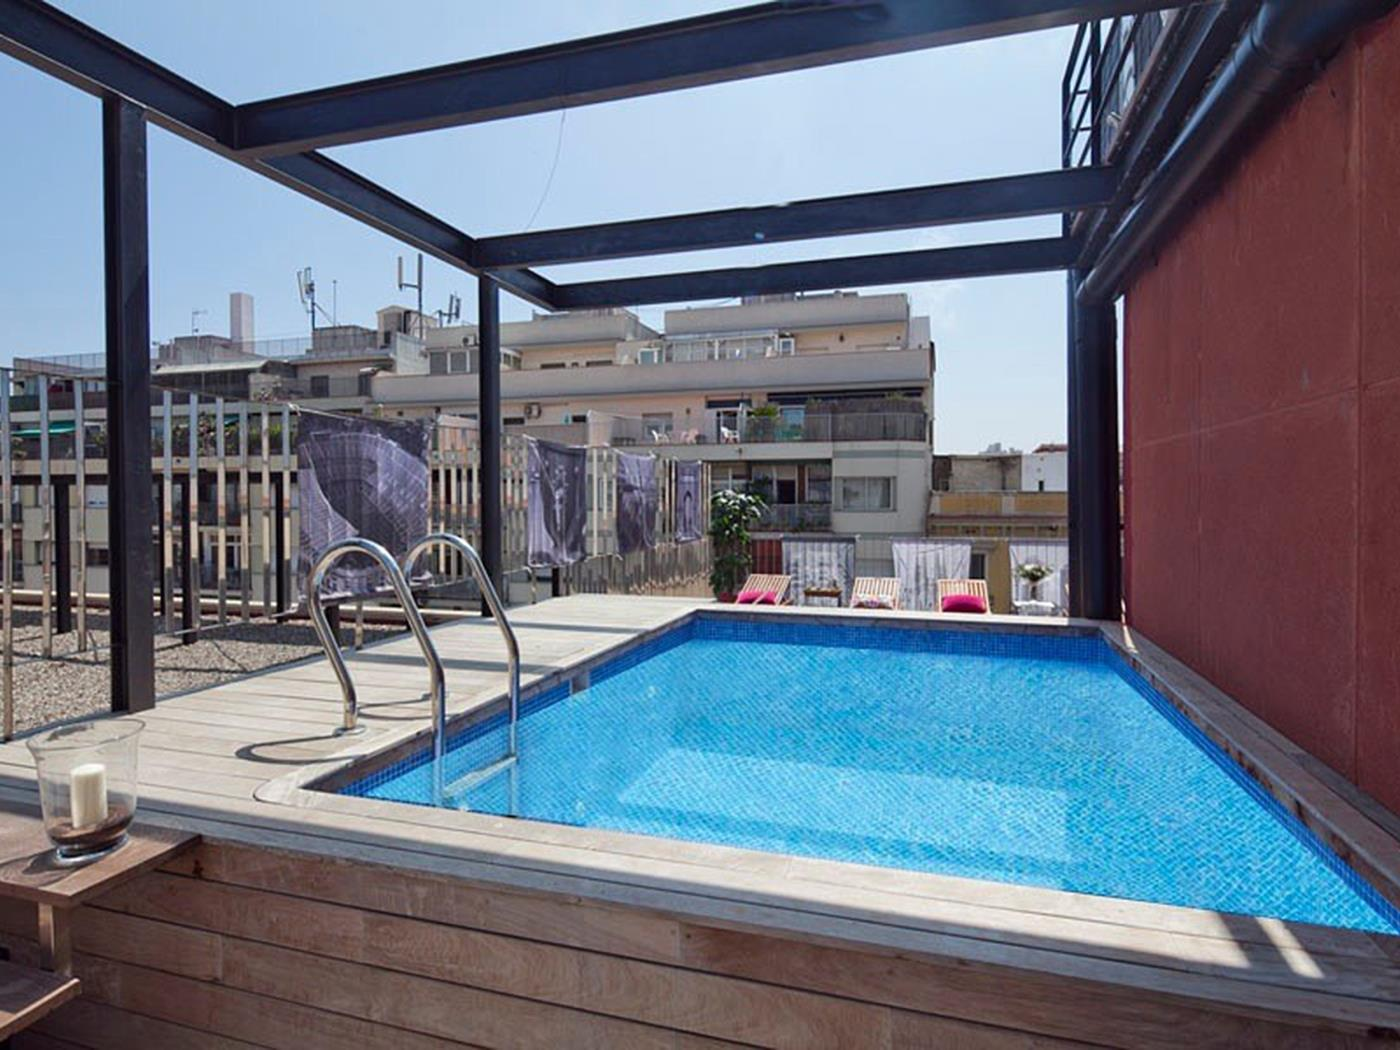 Barcelona Apartment Arc de Triomf with Pool - My Space Barcelona Aпартаменты